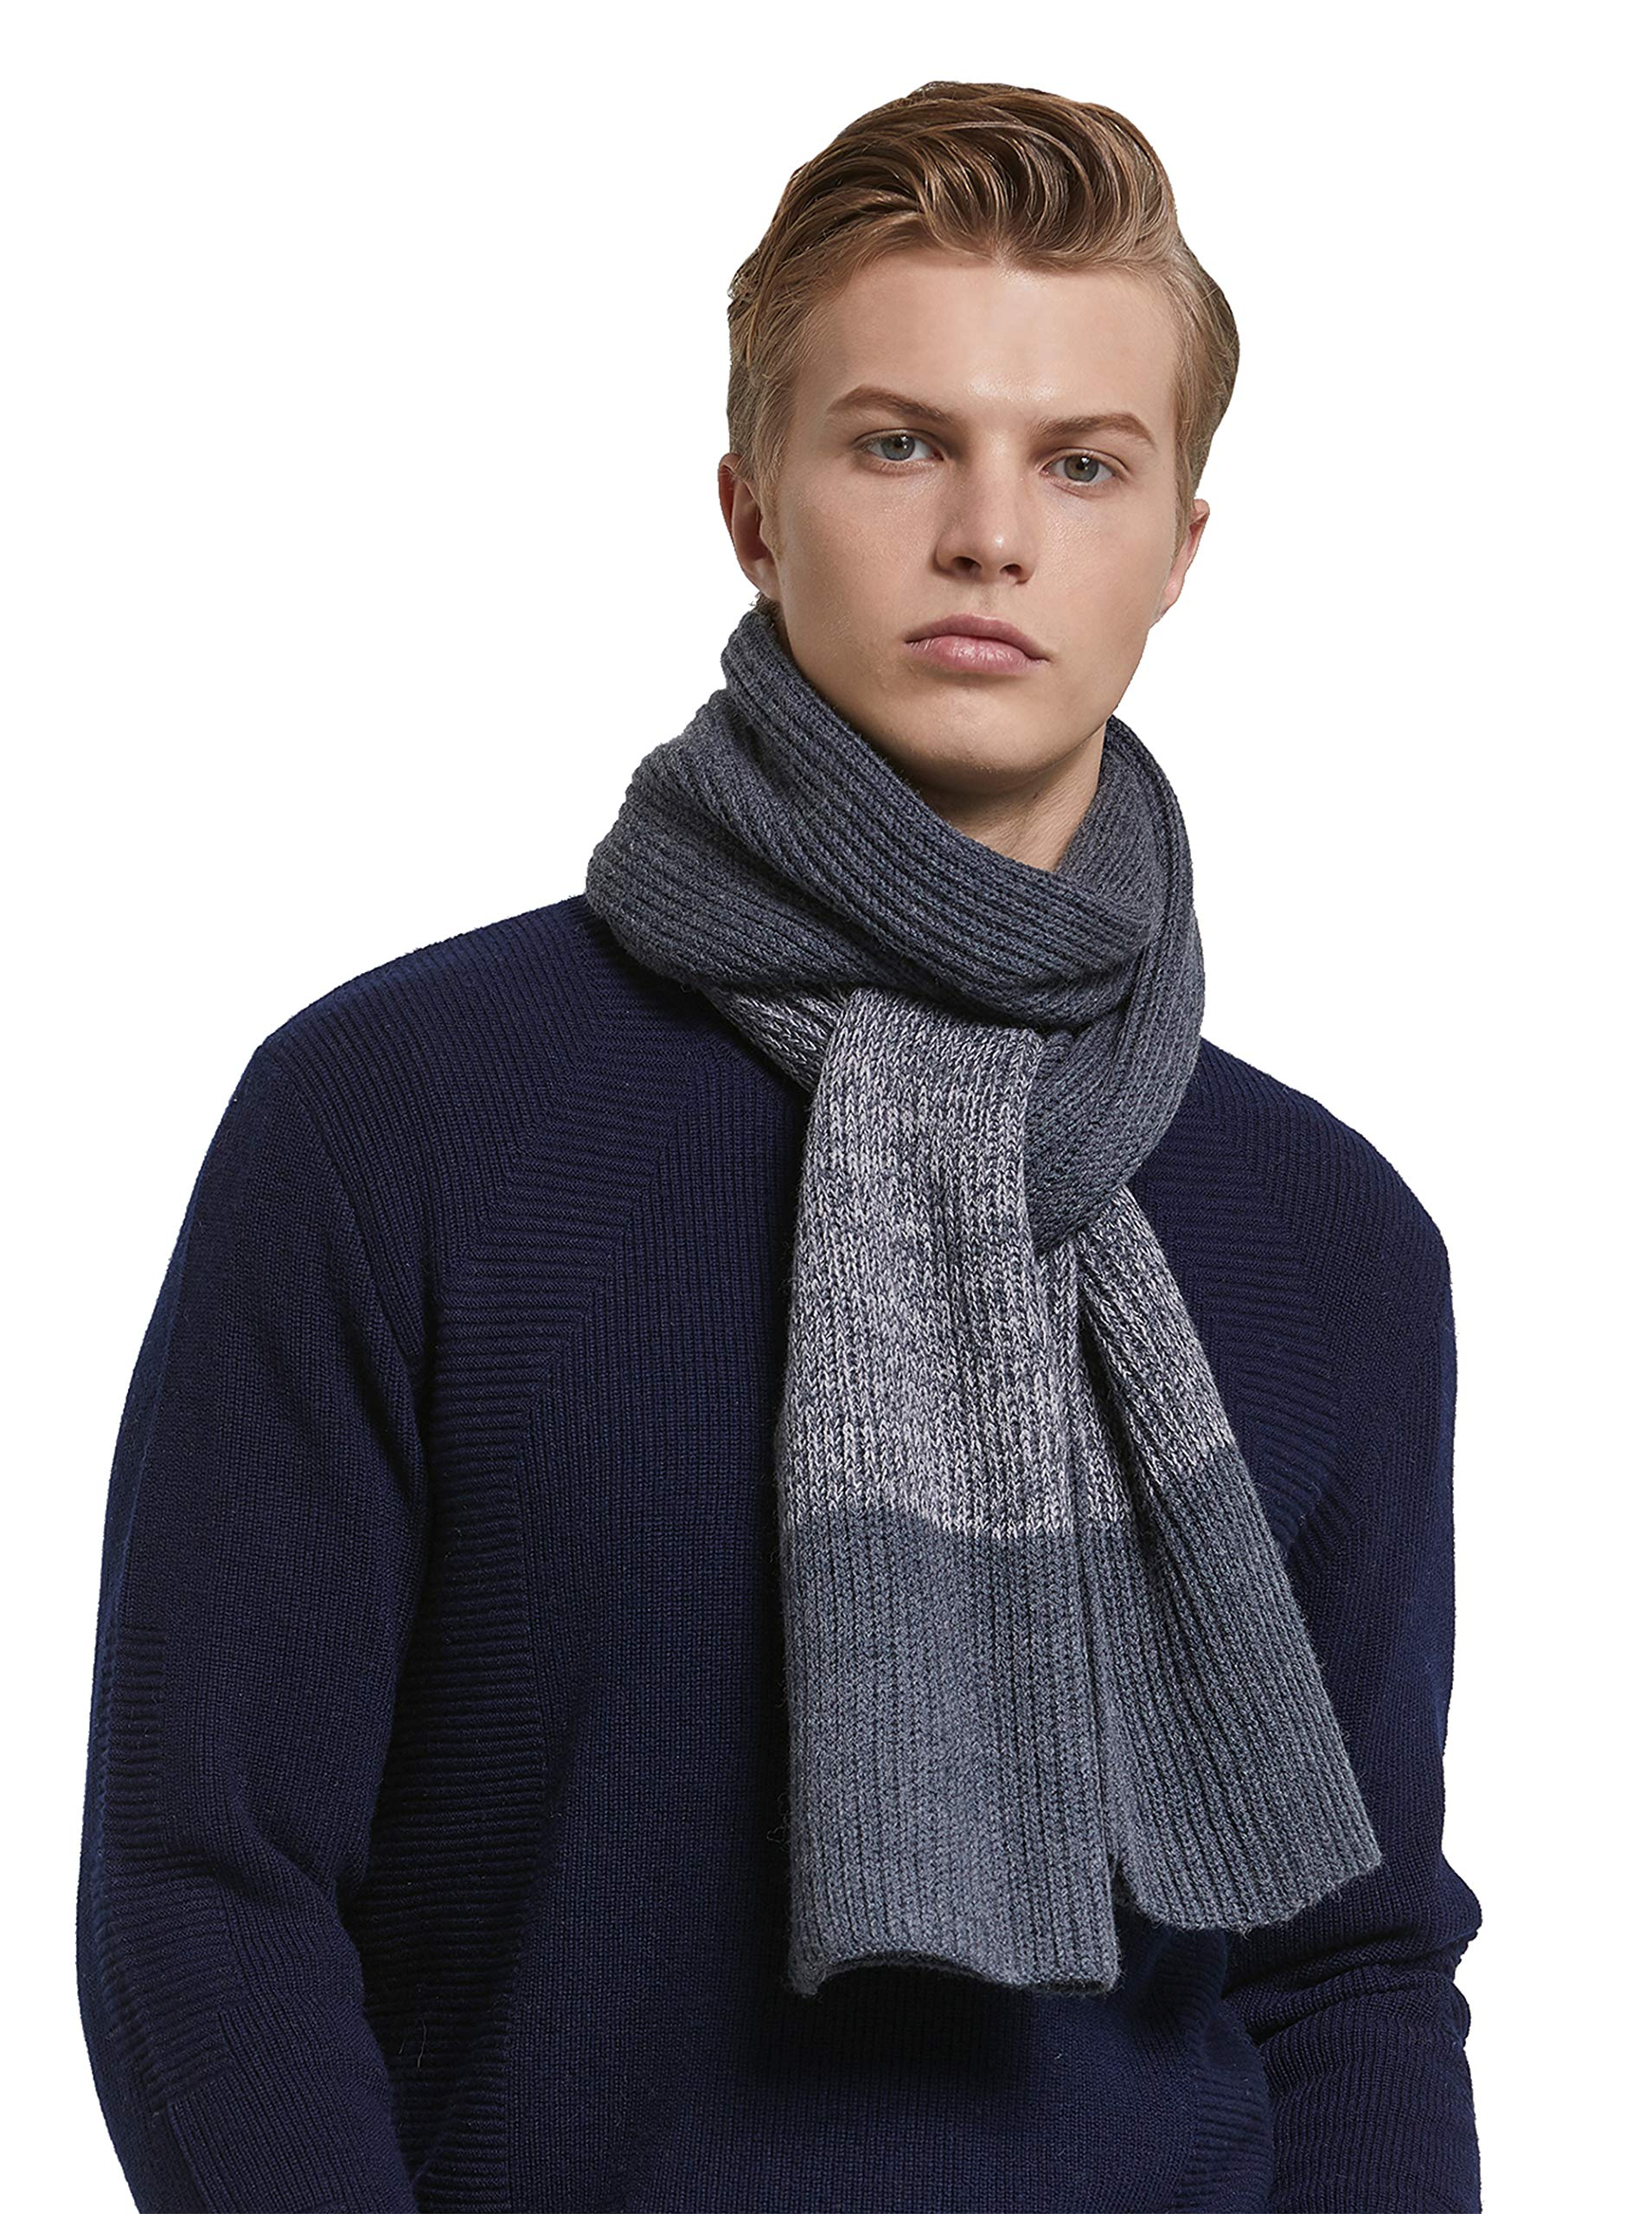 RIONA Men's Winter Cashmere Feel Australian Merino Wool Soft Warm Knitted Scarf with Gift Box (Grey)